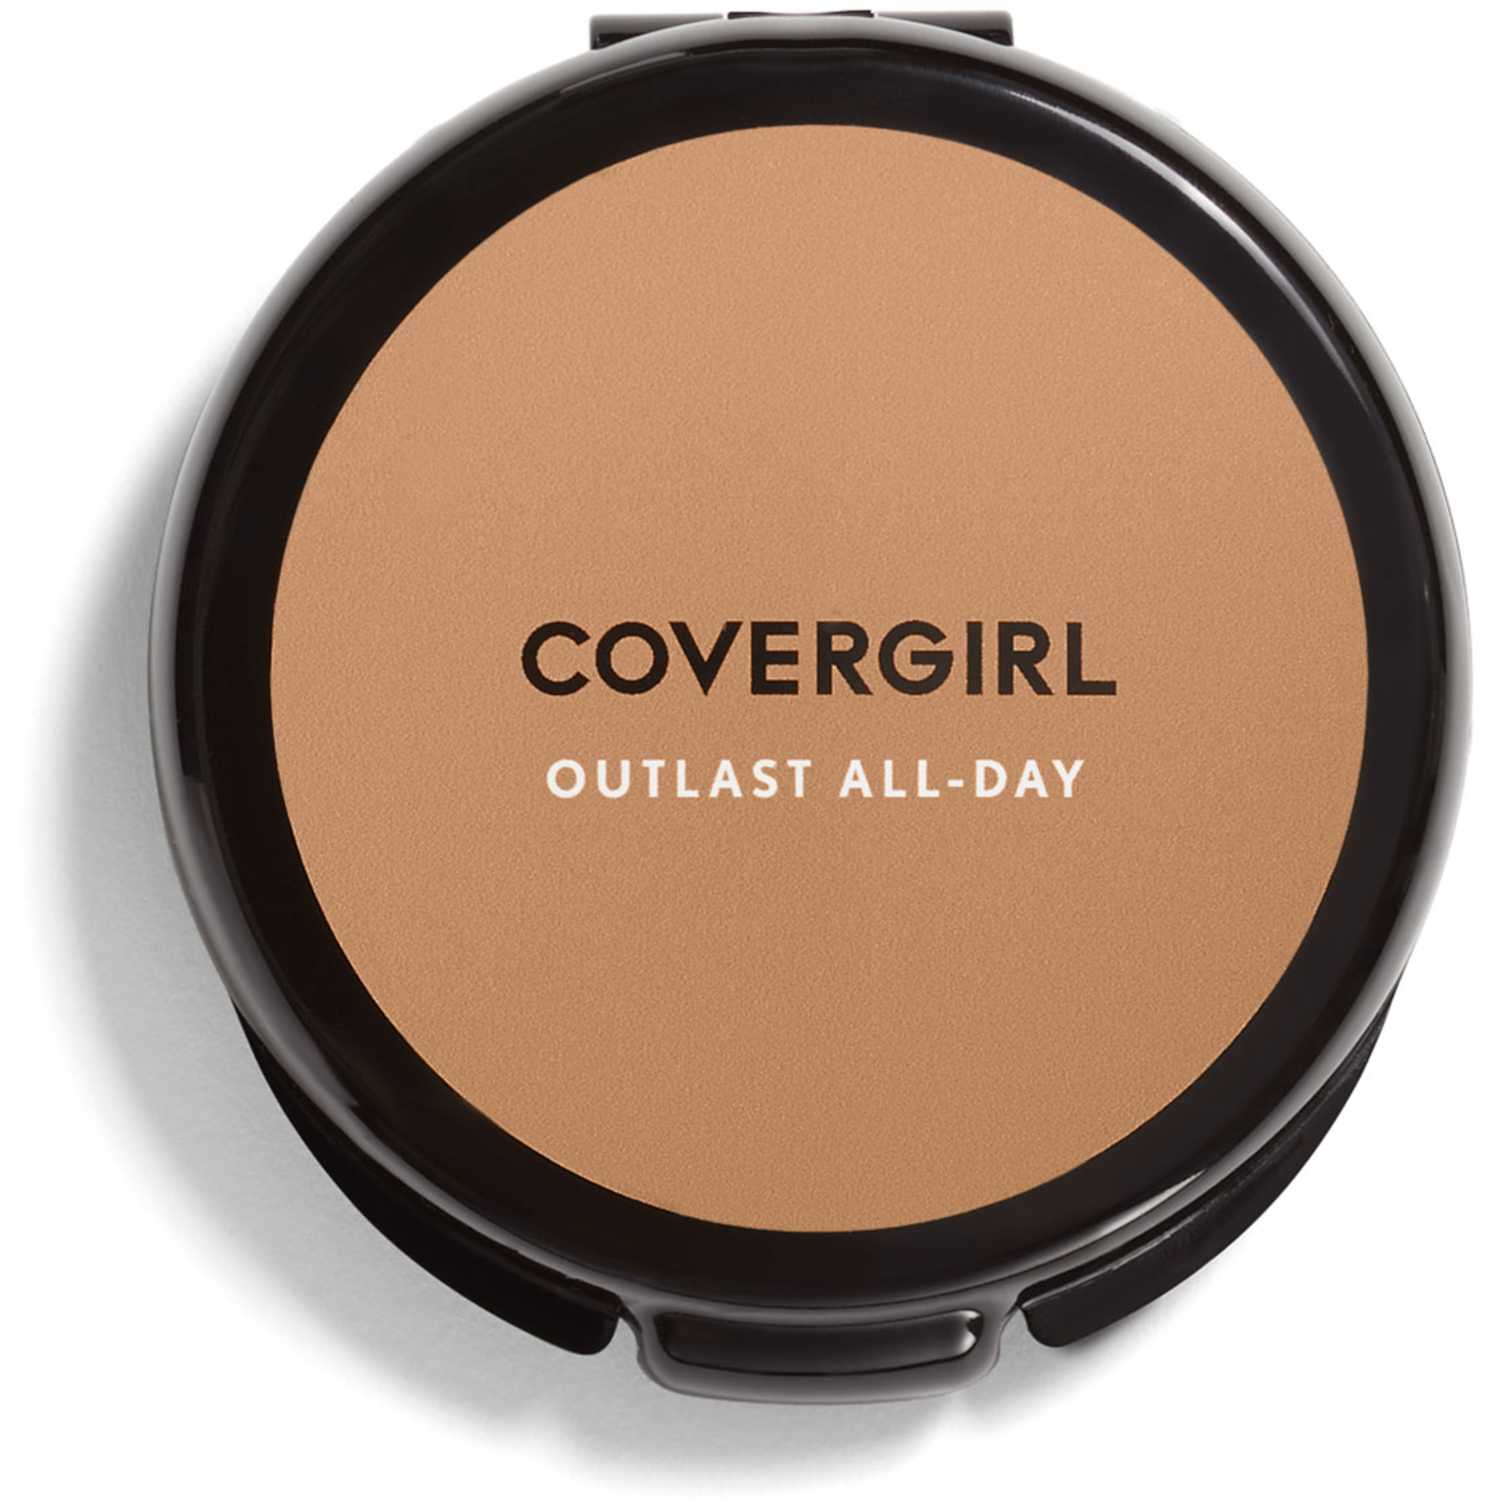 Covergirl Polvos Outlast Matte Finish Powder Light Medium Deep Correctores